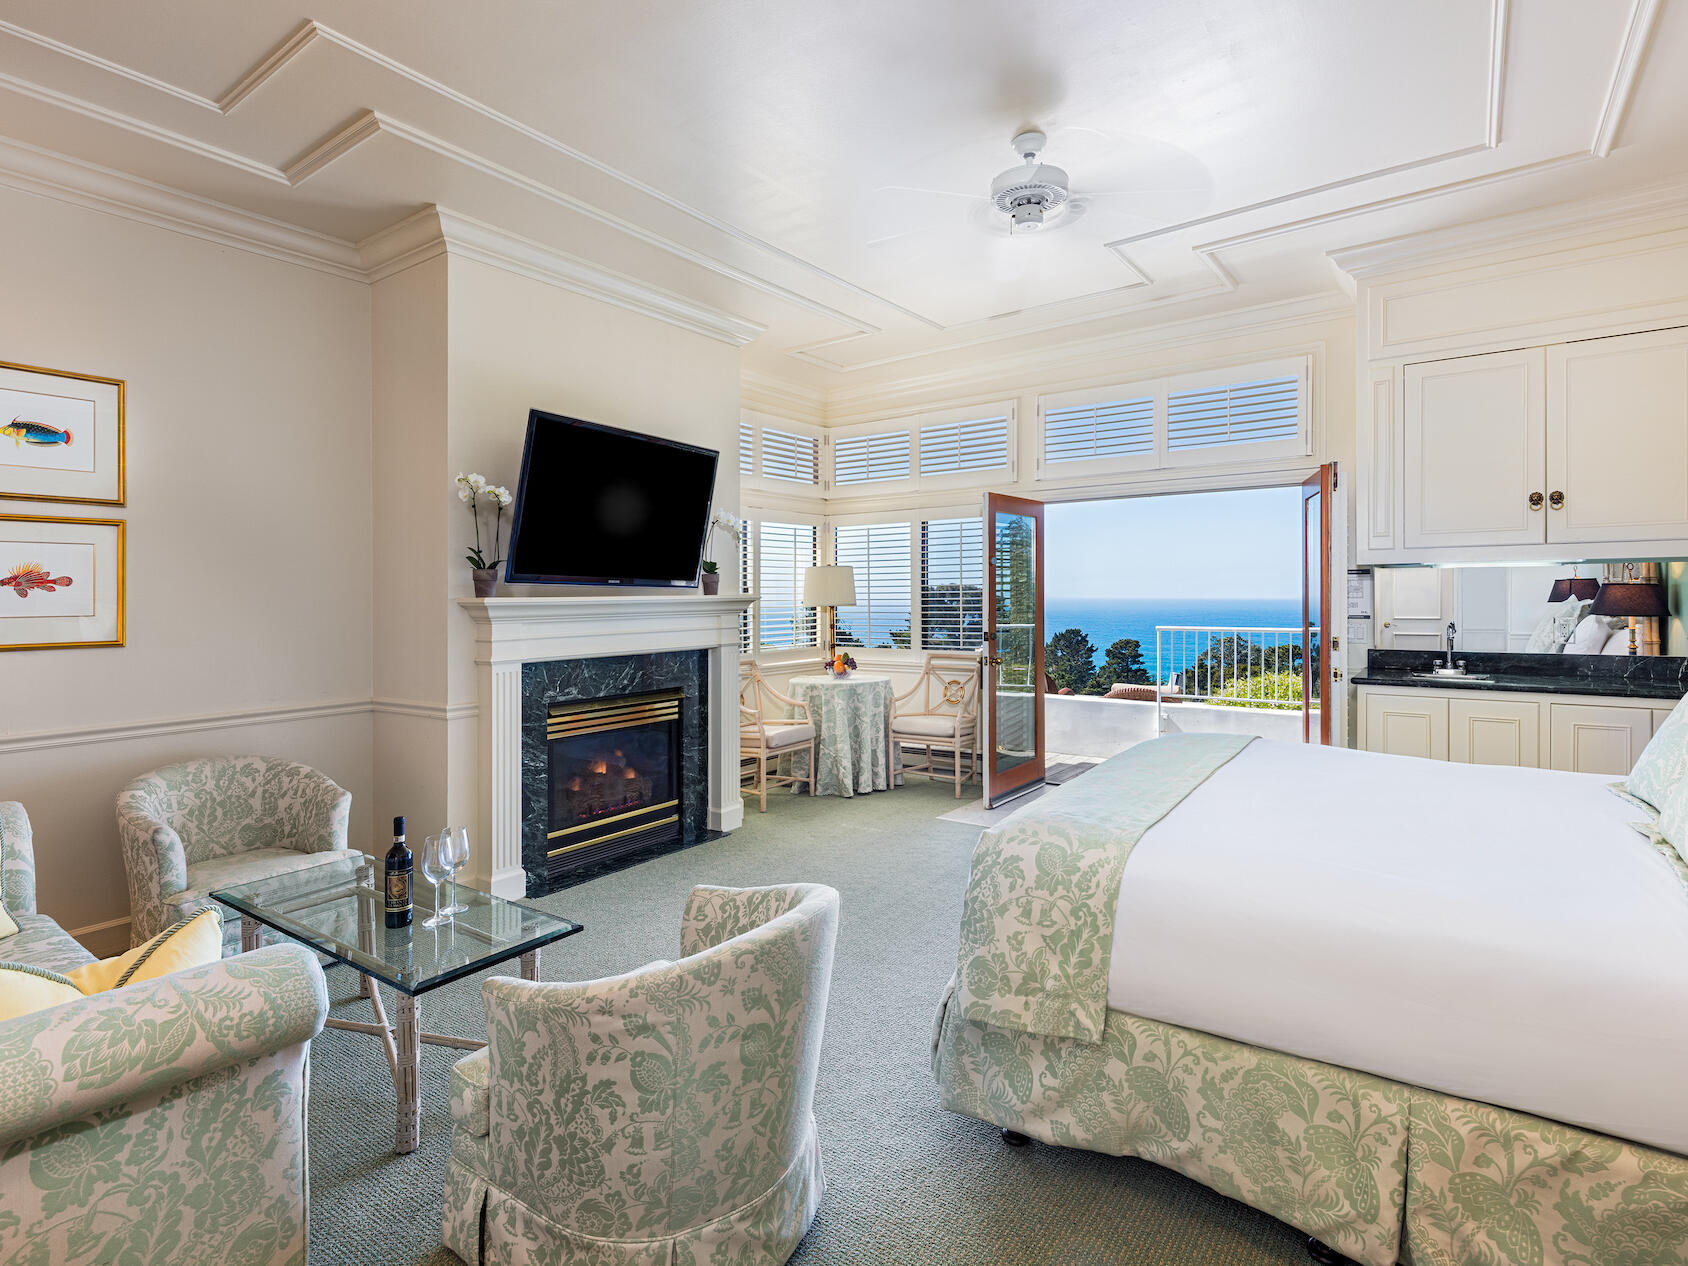 Deluxe King Suite with a king bed, sitting area at Tally Ho Inn